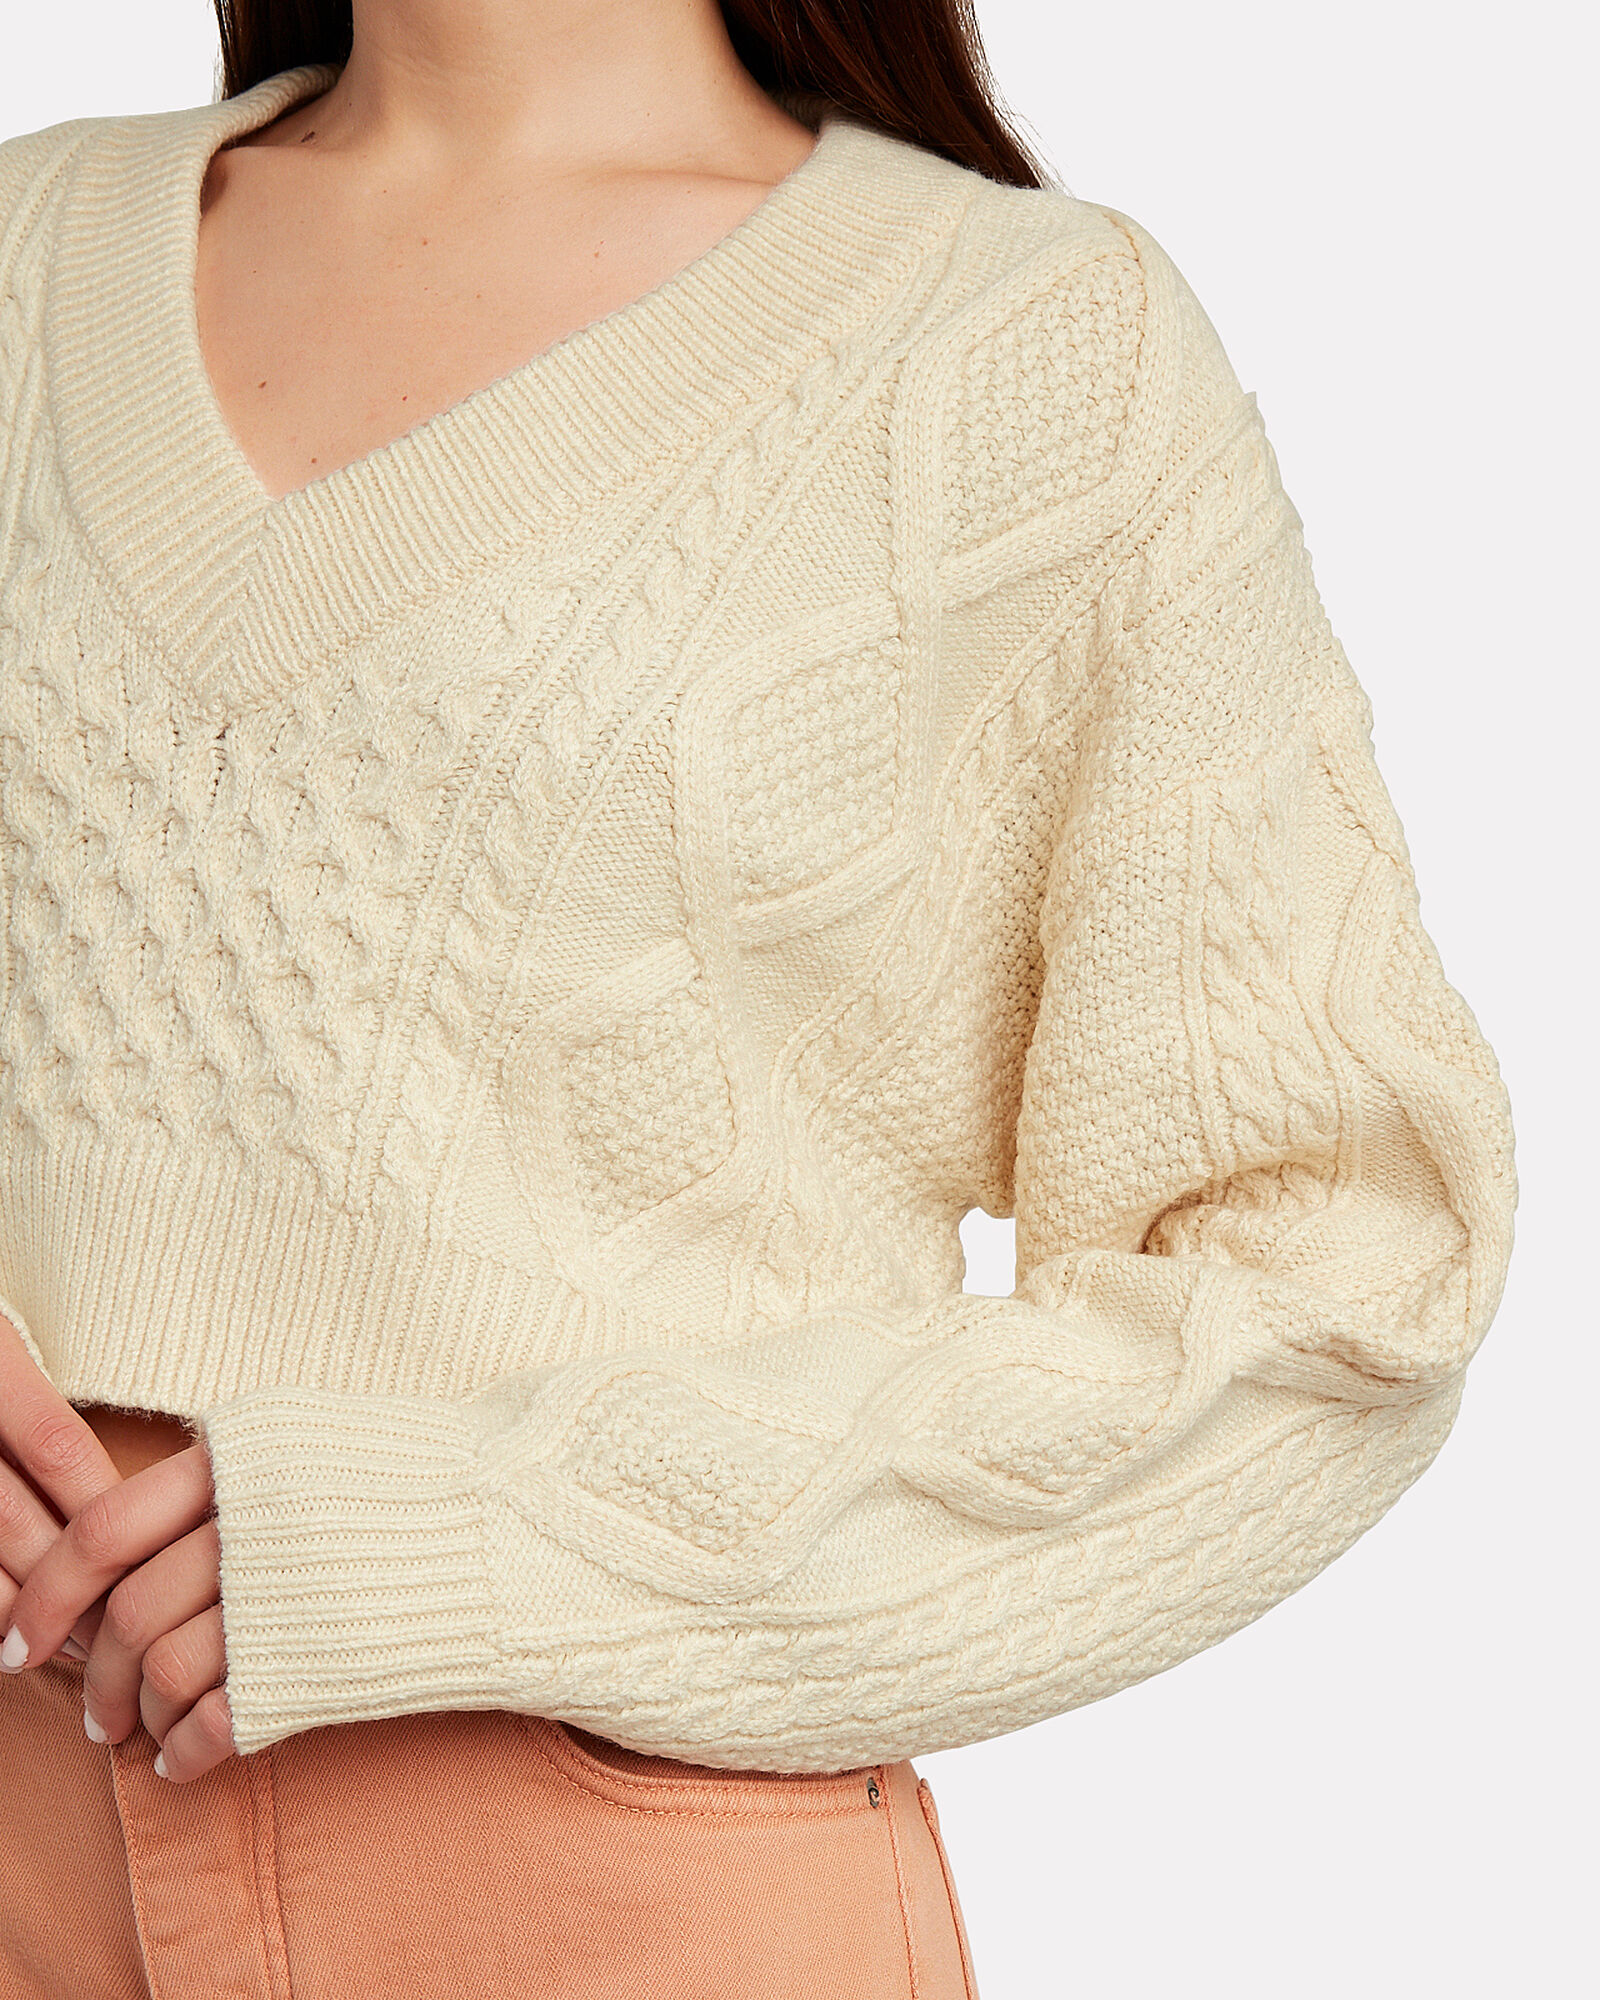 Unhinged Cropped Cable Knit Sweater, IVORY, hi-res